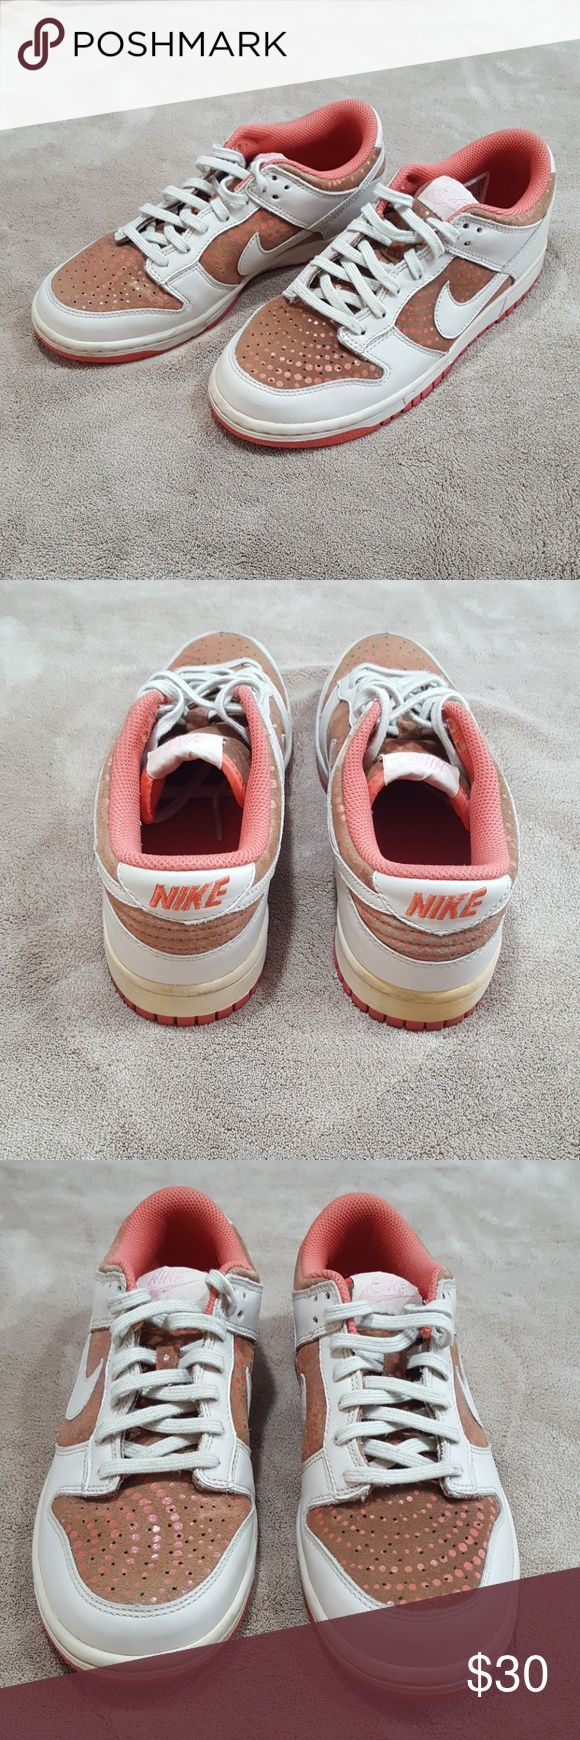 🔥FOOTWEAR CLEARANCE - $15🔥Womens Nike low dunk Gently used women's Nike low dunk sneakers. Size 6.5. Colors: coral and beige. Nike Shoes Sneakers